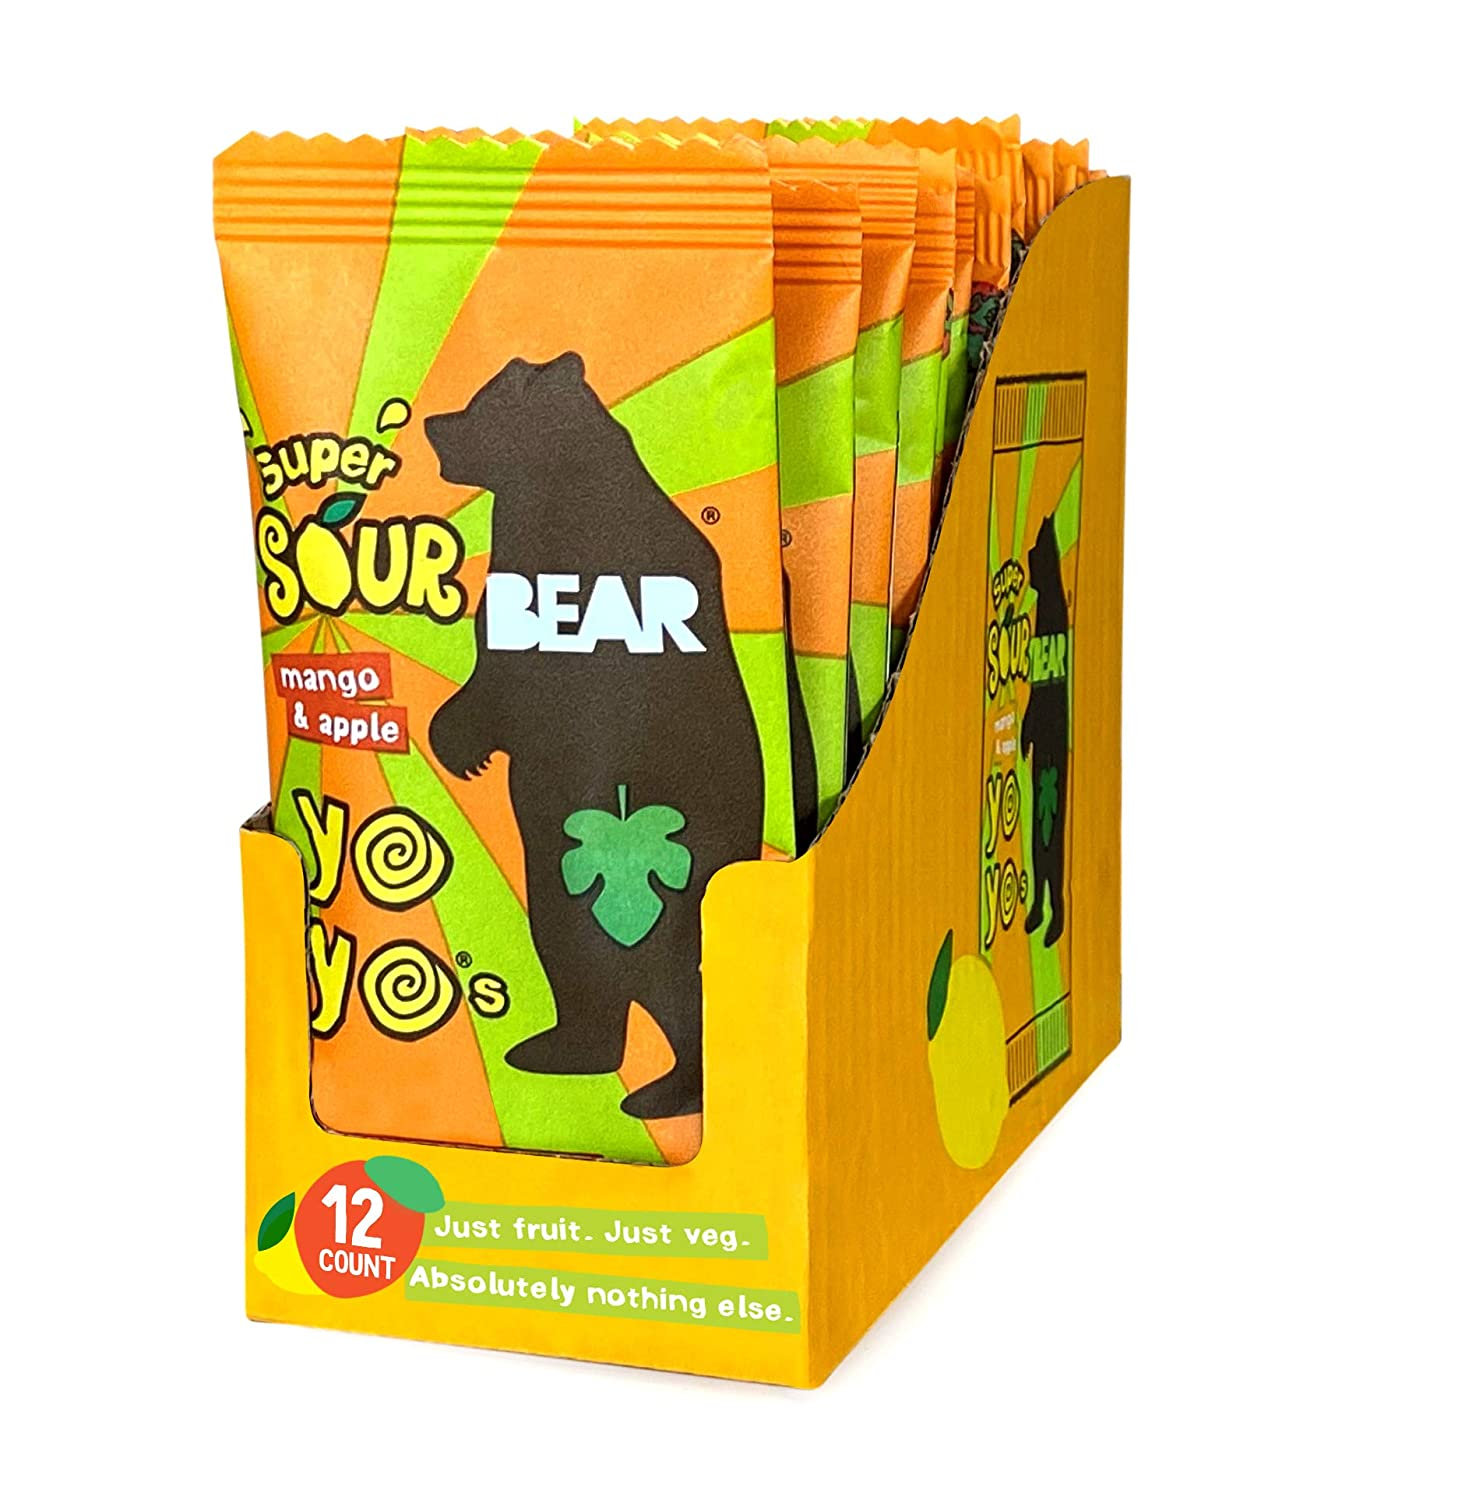 BEAR Sour - Real Fruit Yoyos - Mango-Apple - No added Sugar, All Natural, non GMO, Gluten Free, Vegan - Healthy on-the-go snack for kids & adults - 0.7 Ounce ( Pack Of 12 )